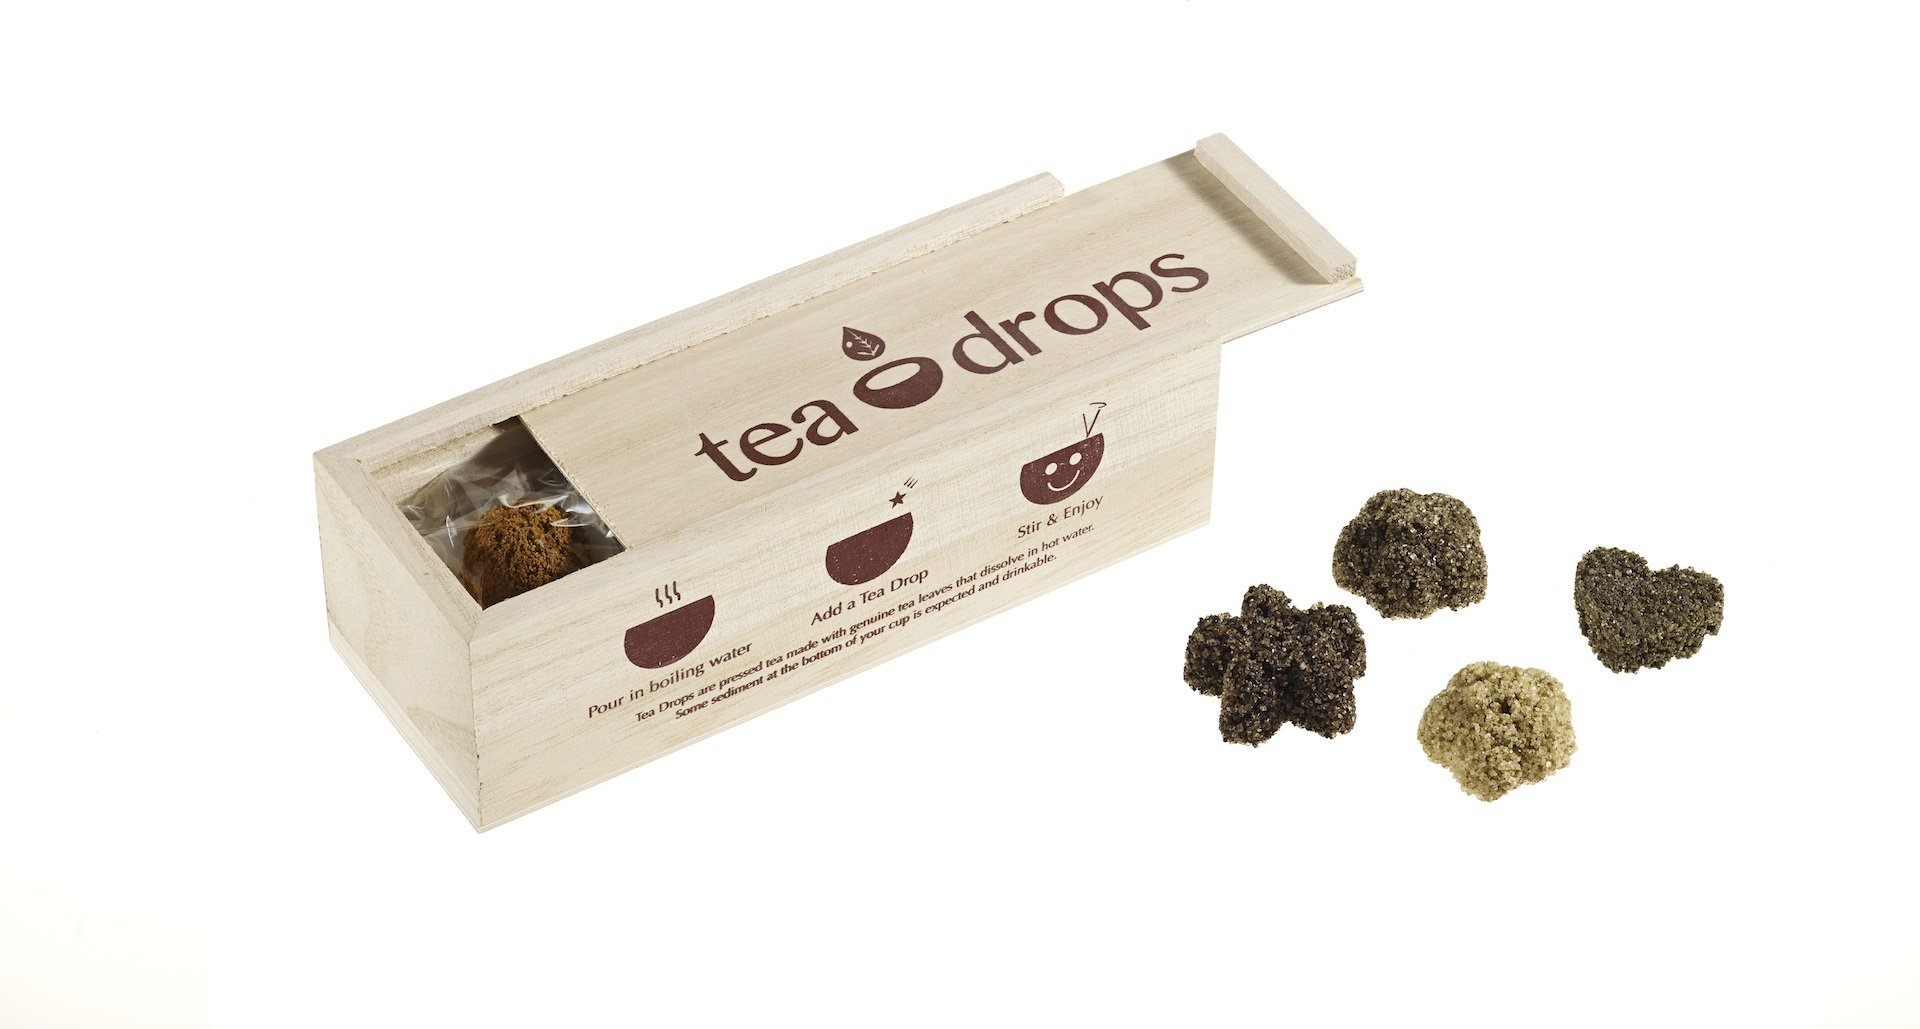 Tea Drops and Sampler Box Image